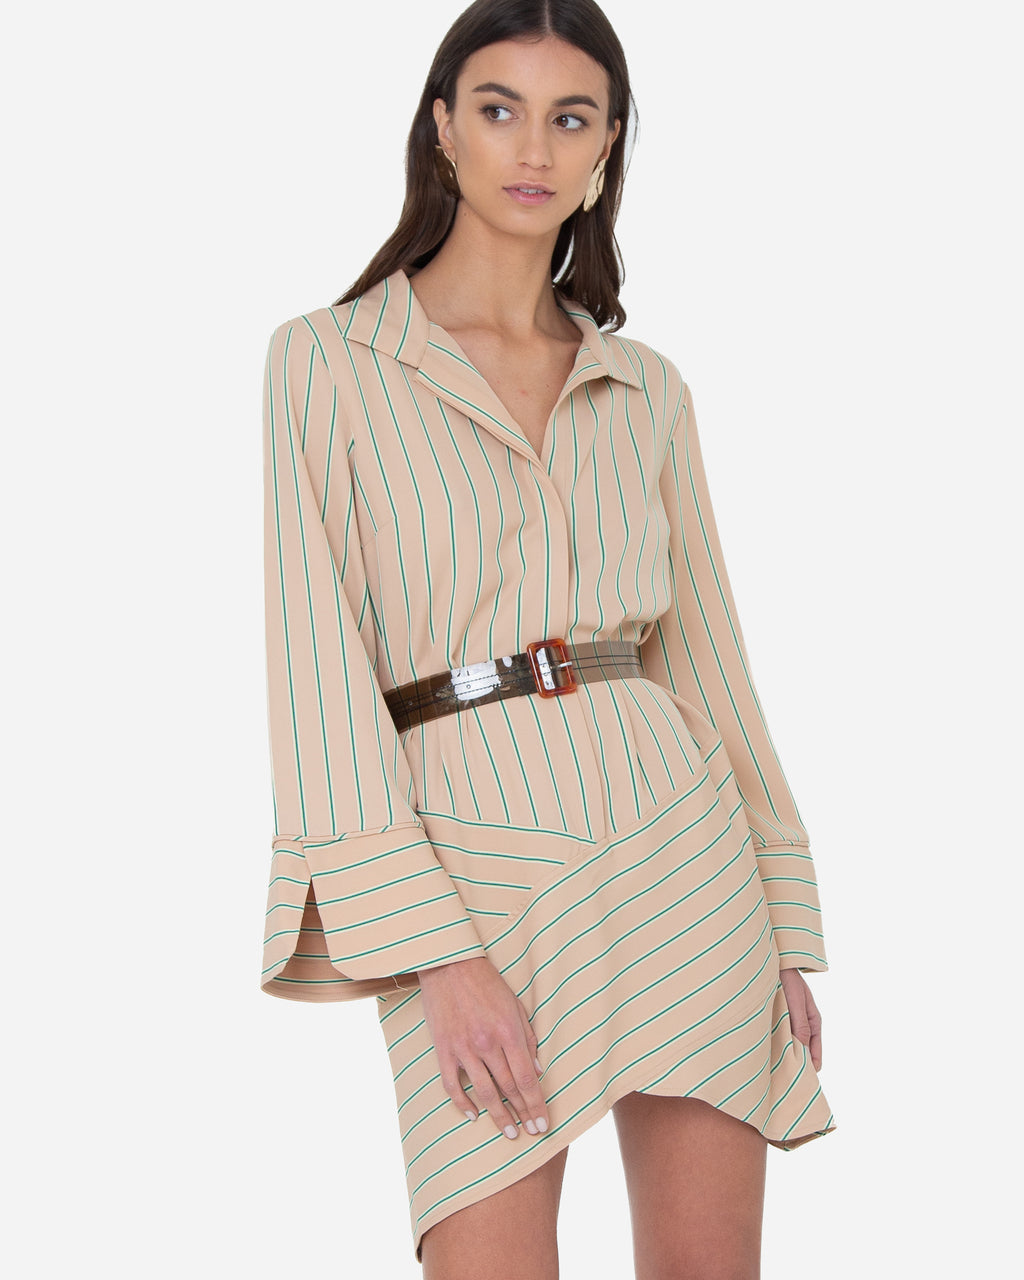 SELENE SHIRTDRESS